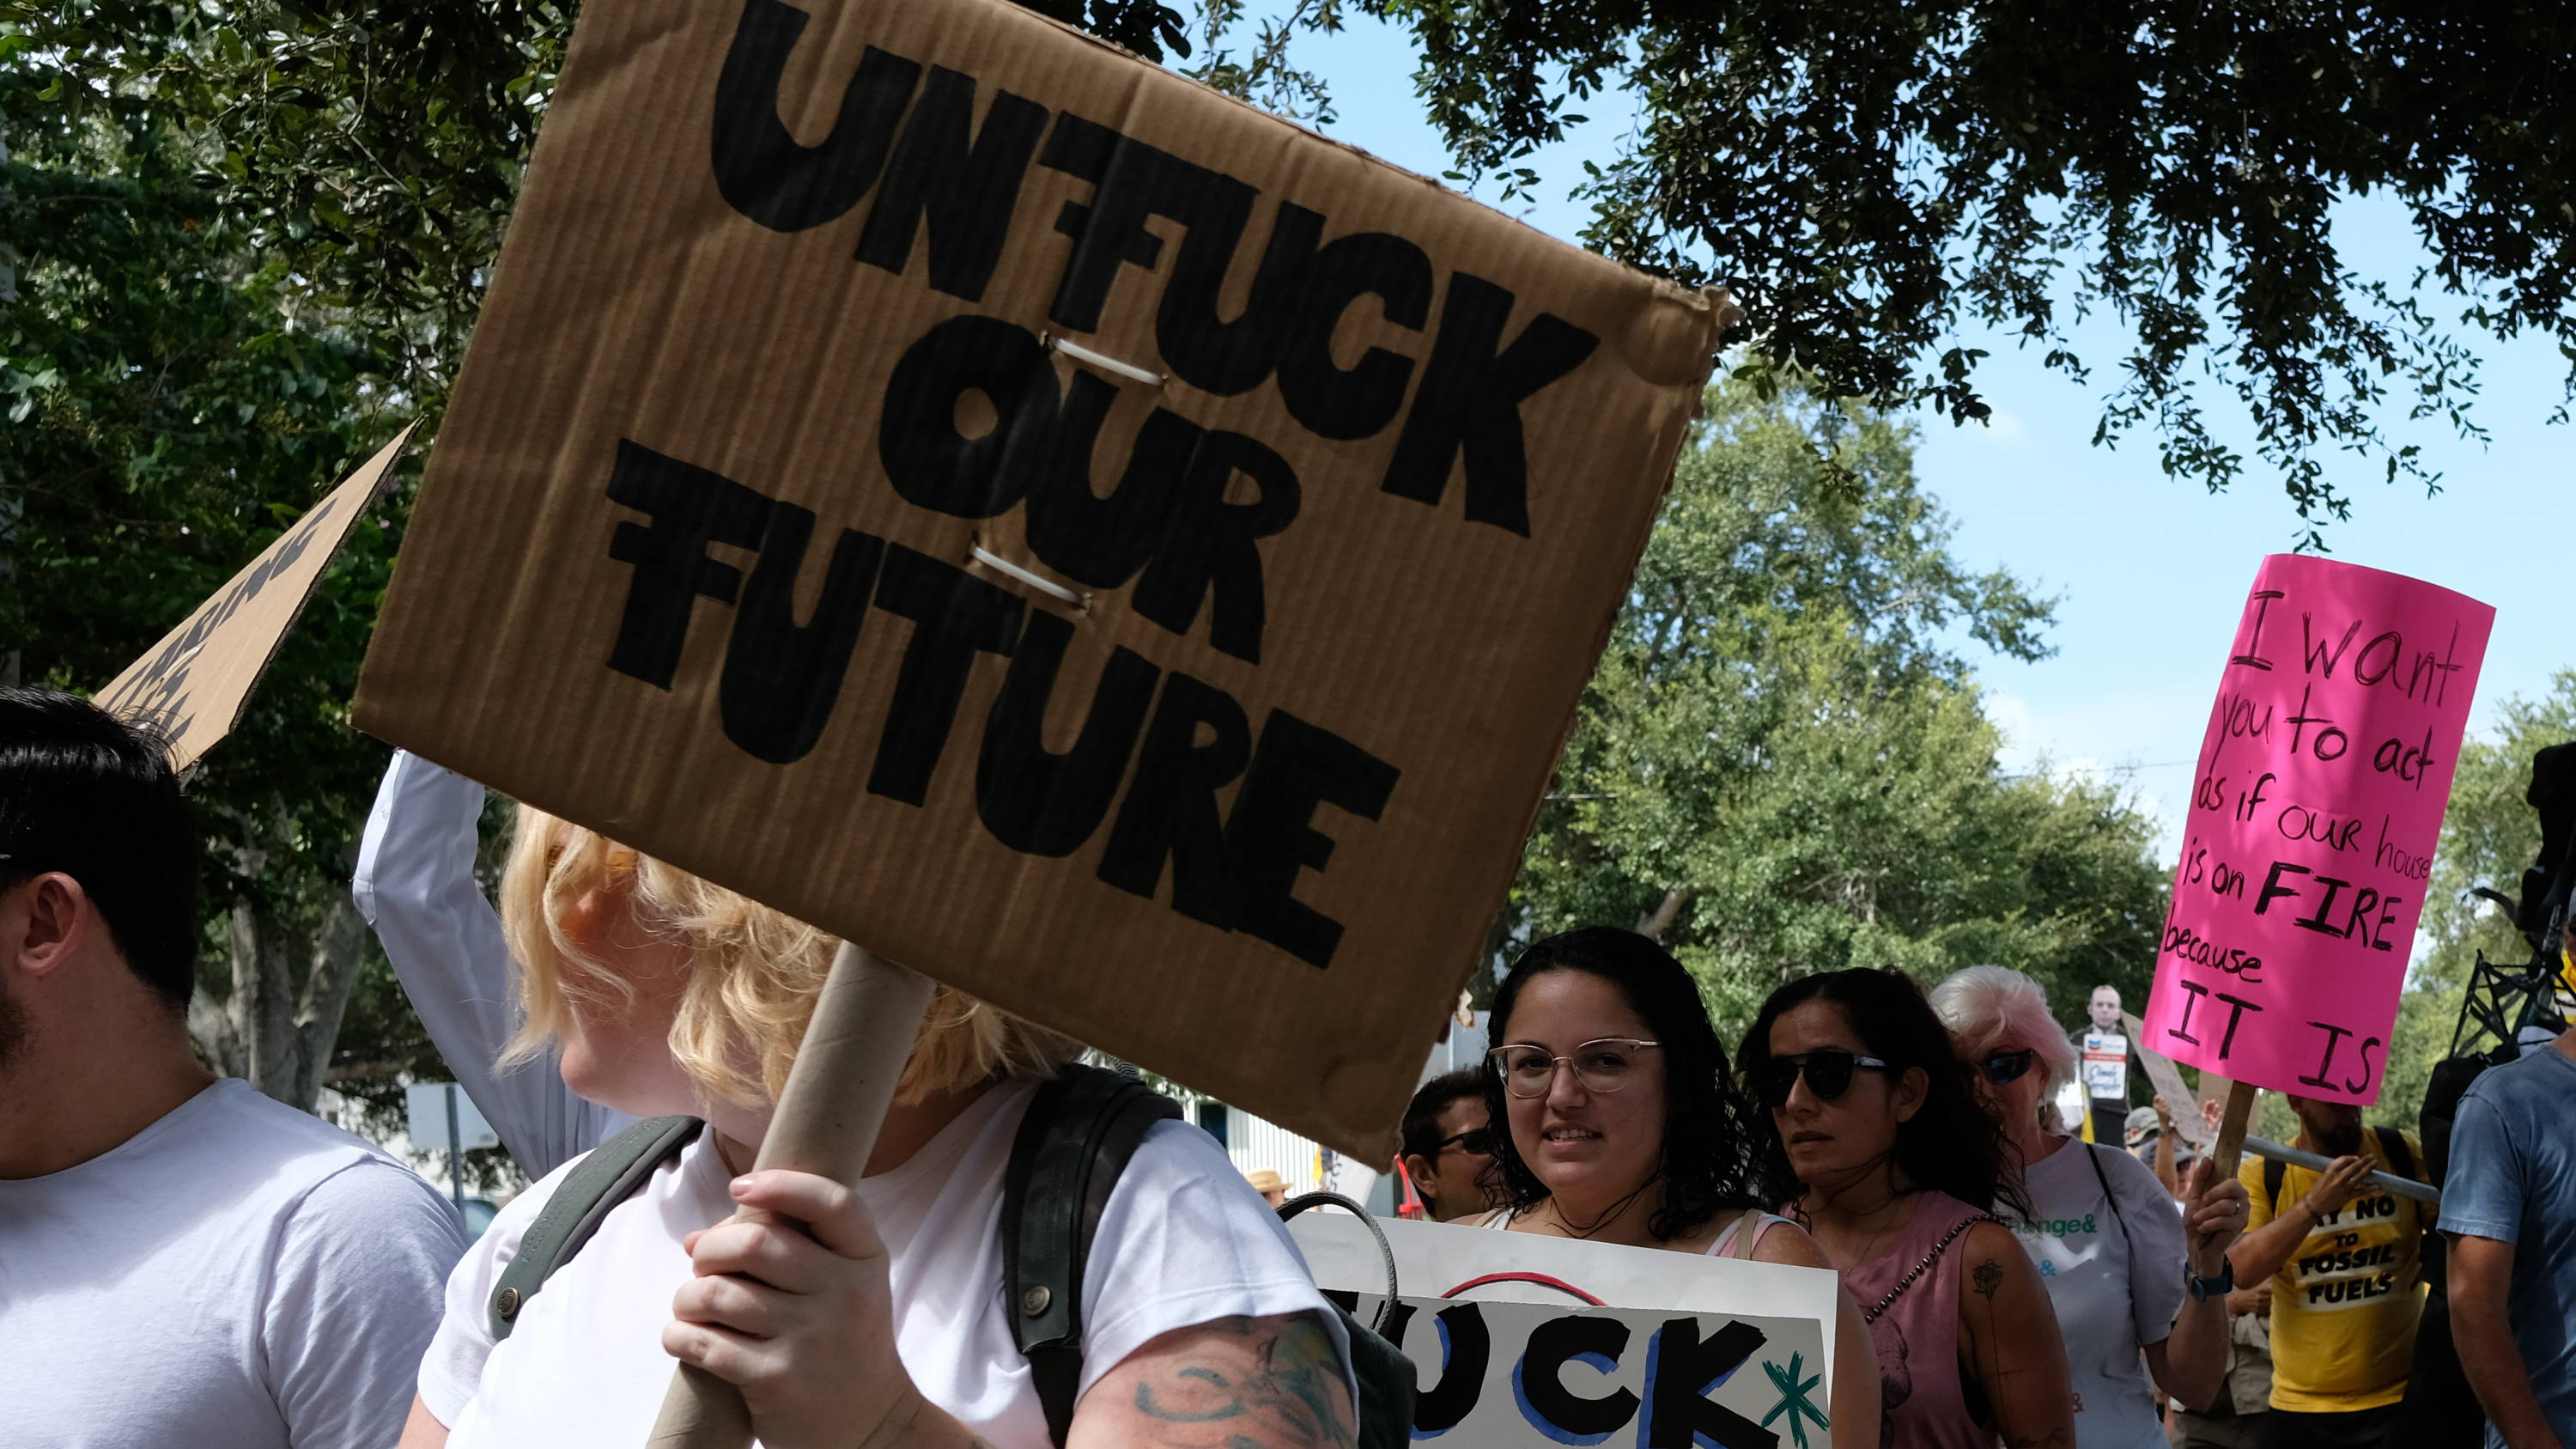 Climate Strike in St. Petersburg Florida Activists Marching For An End To Climate Crisis